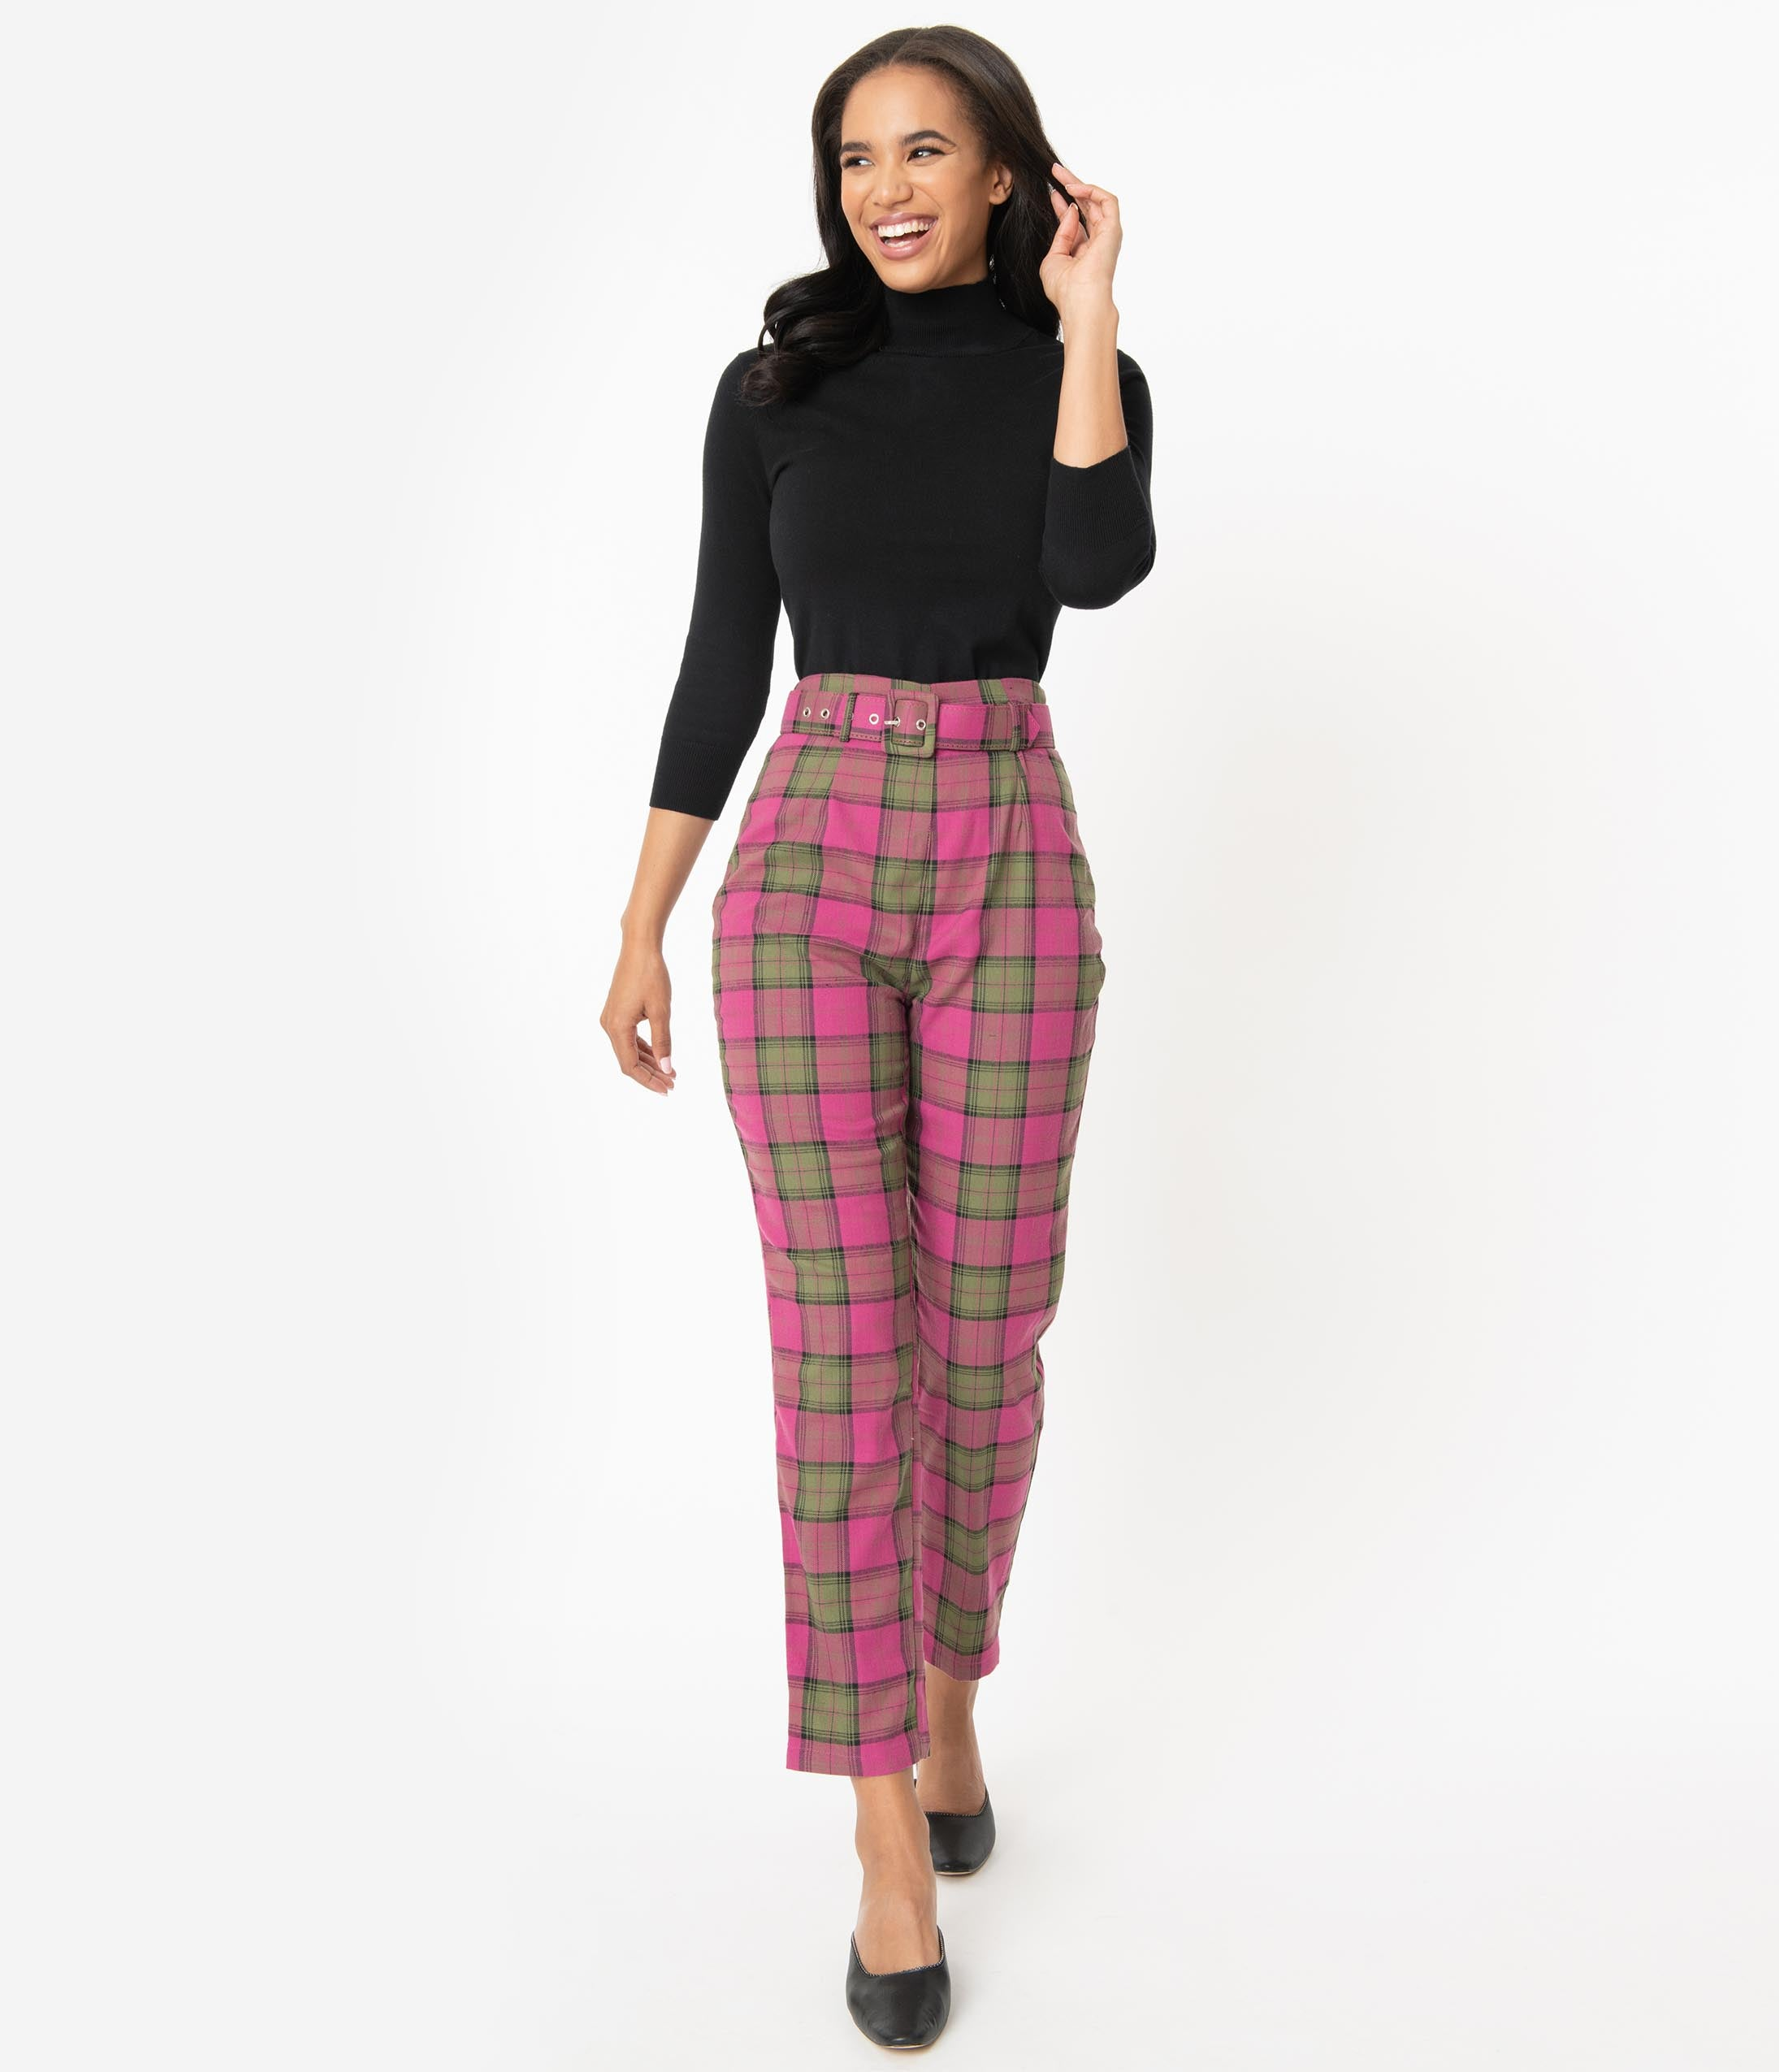 70s Outfits – 70s Style Ideas for Women Collectif Fuchsia Pink  Olive Sassy Plaid Thea Pants $68.00 AT vintagedancer.com